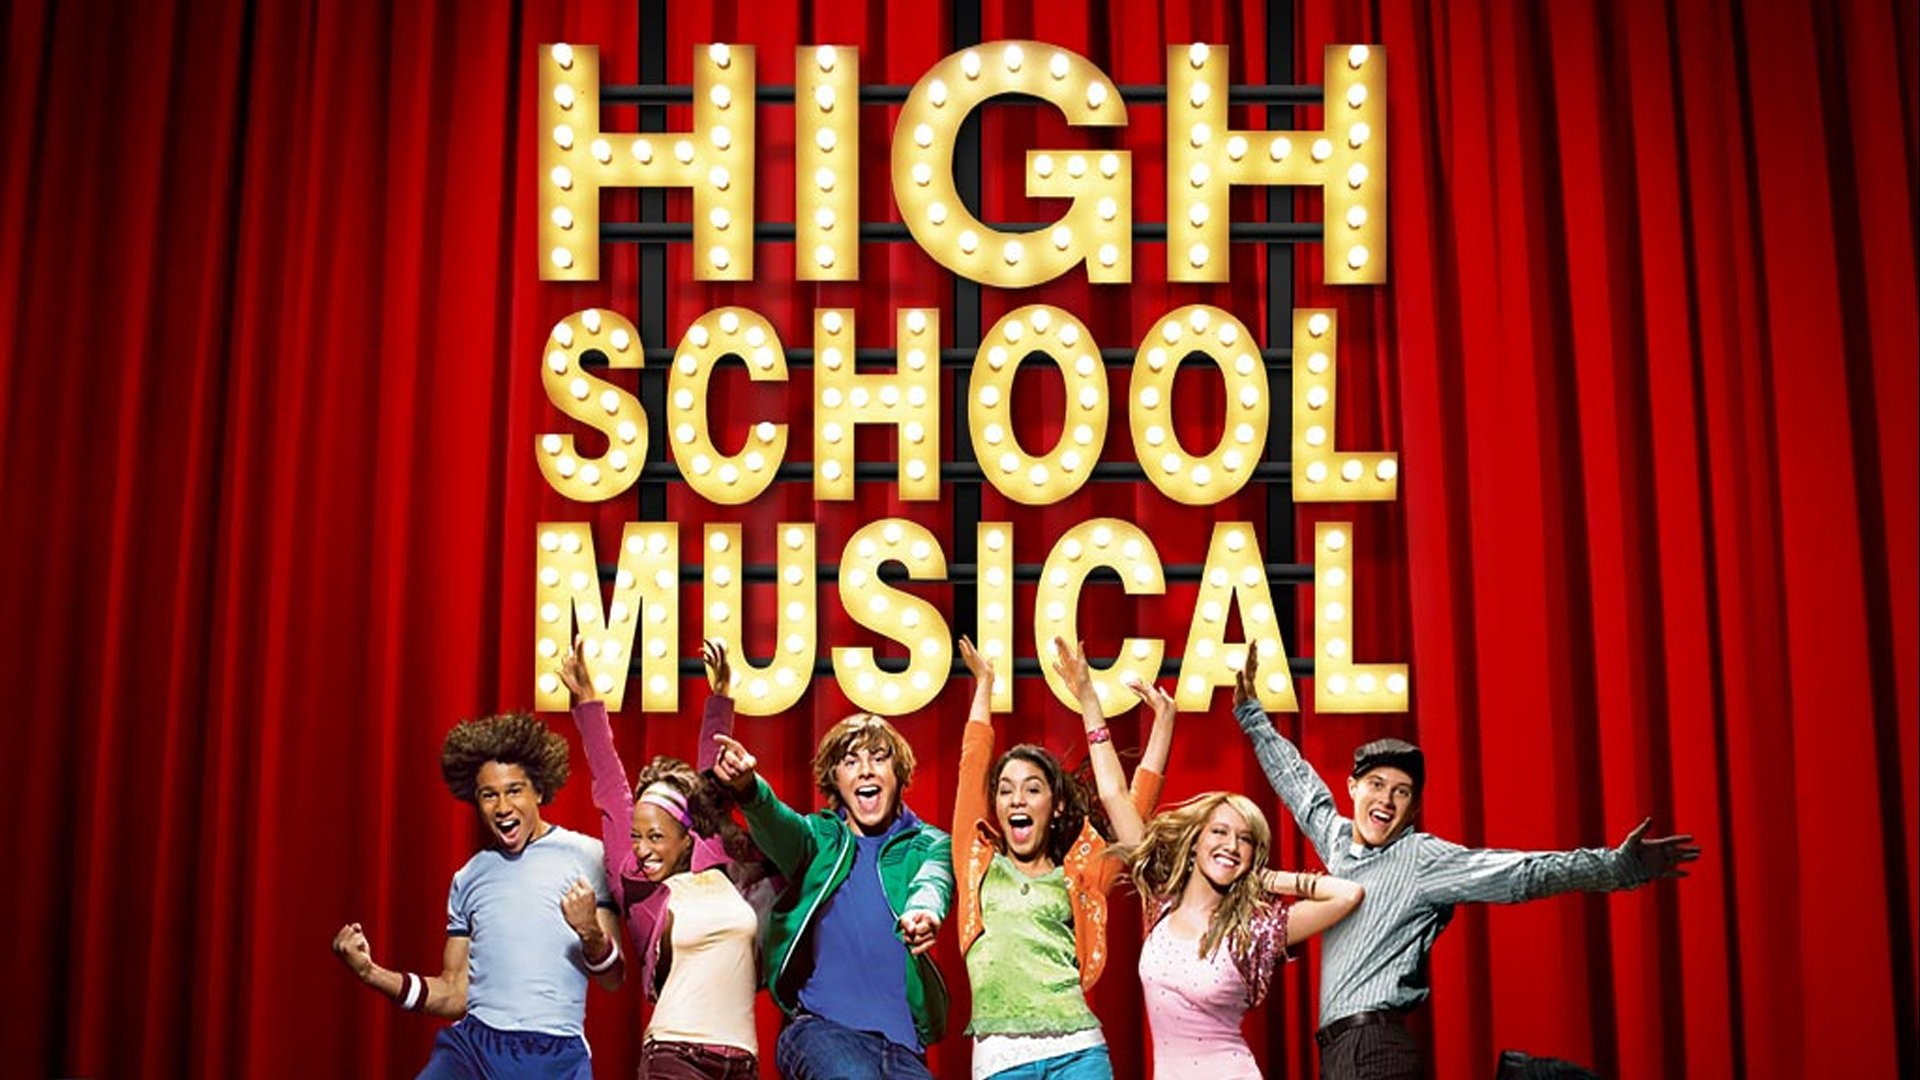 Meet the Cast of Disneys New High School Musical Series PHOTO 1920x1080